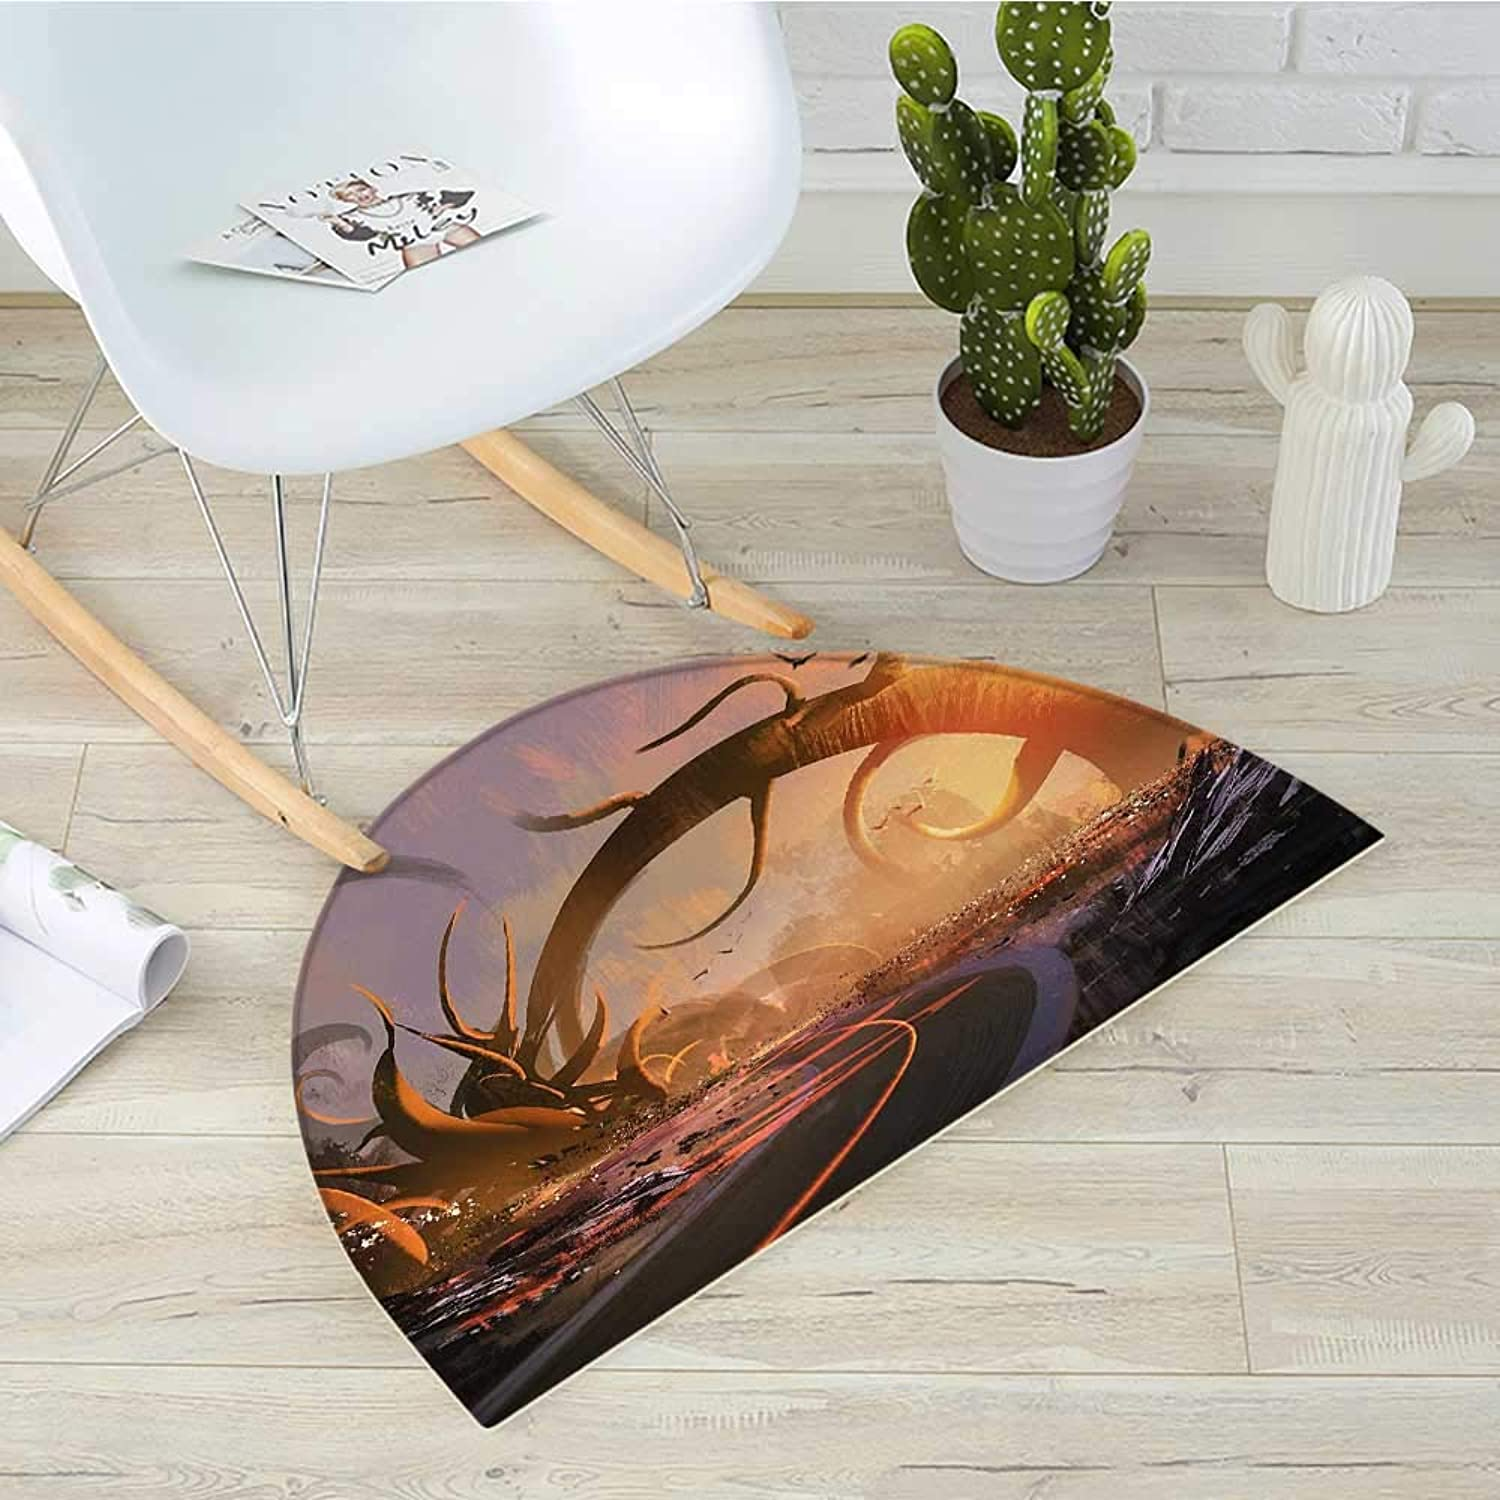 Fantasy Semicircular CushionFairytale Fiction Design with Mystic Twisted Branches on The Highway at Sunset Entry Door Mat H 35.4  xD 53.1  Multicolor